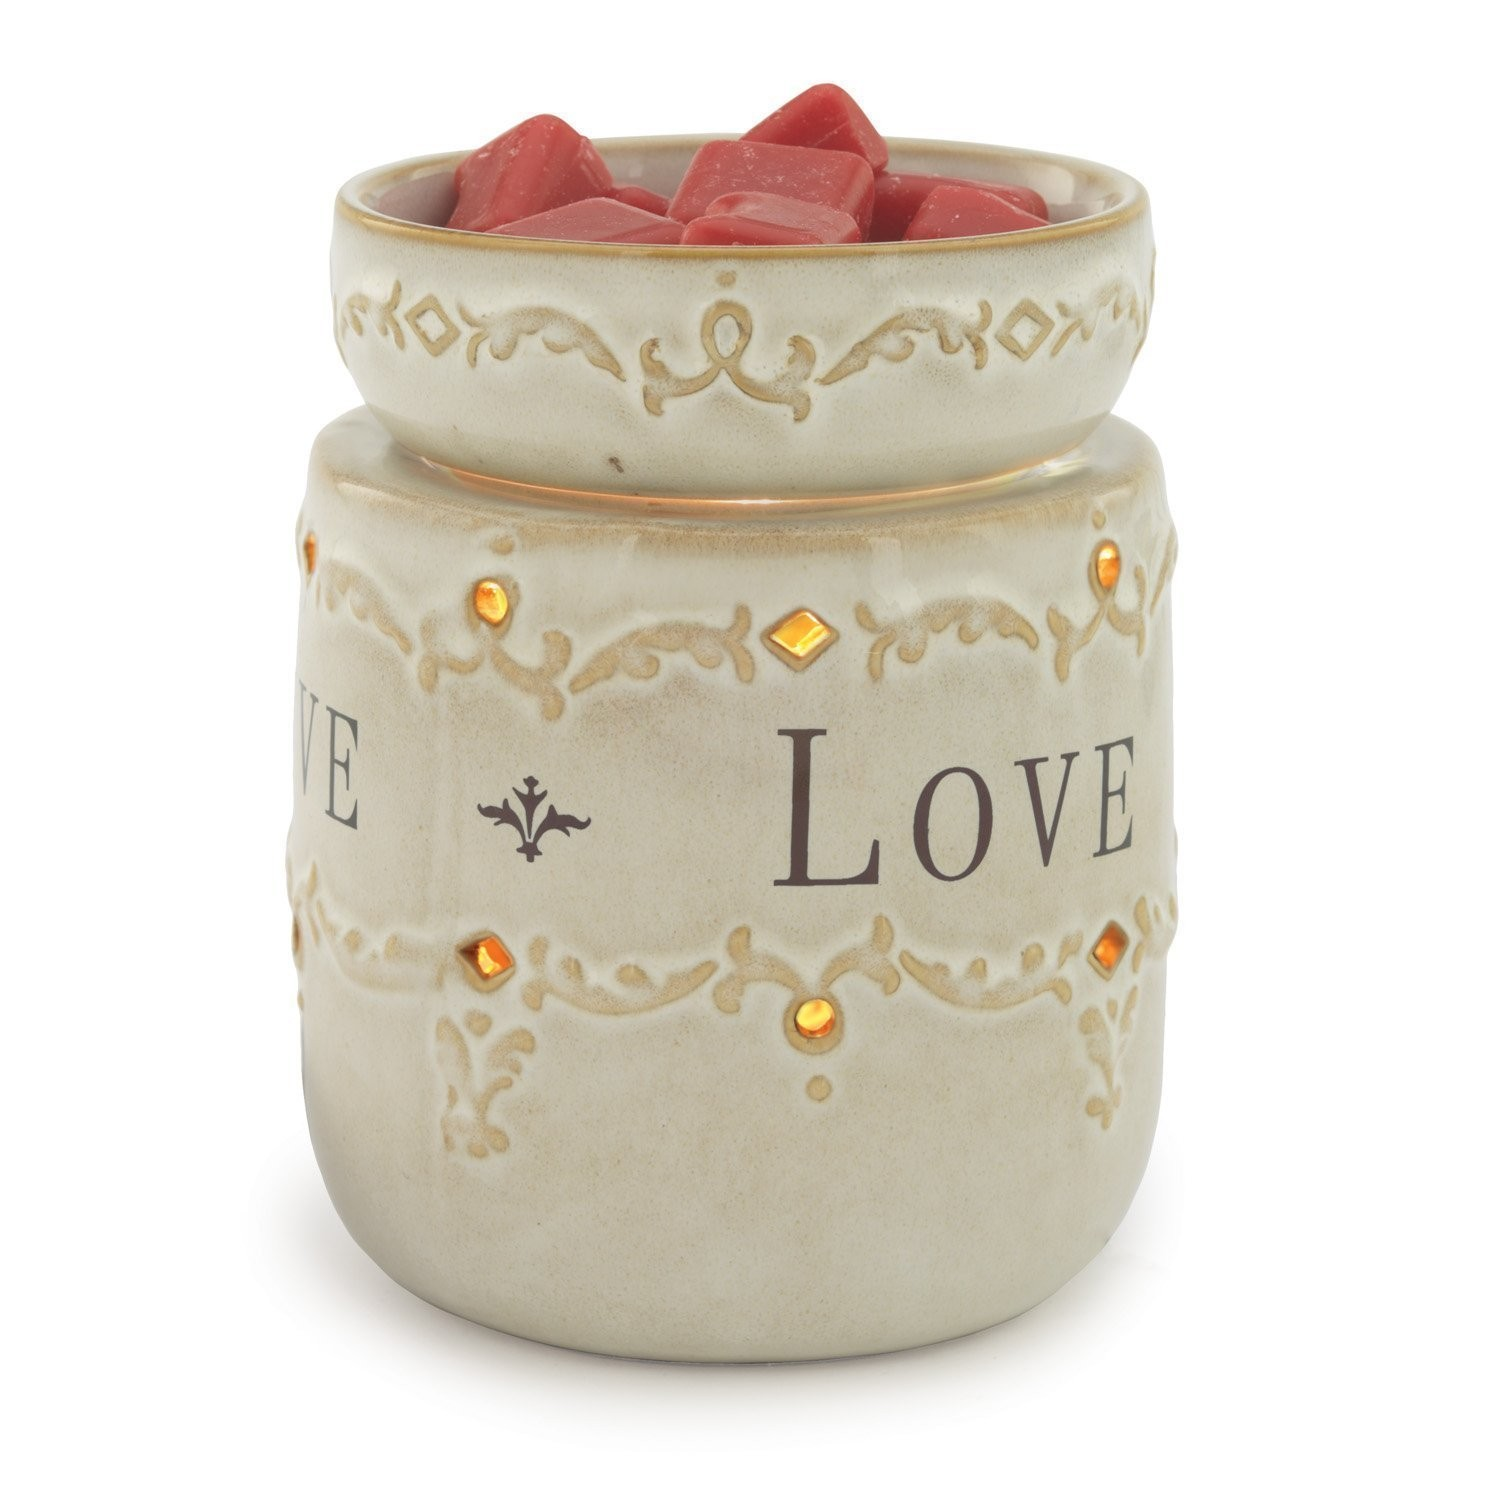 Decorative Ceramic Illumination Candle Warmer Set of 2 Pcs